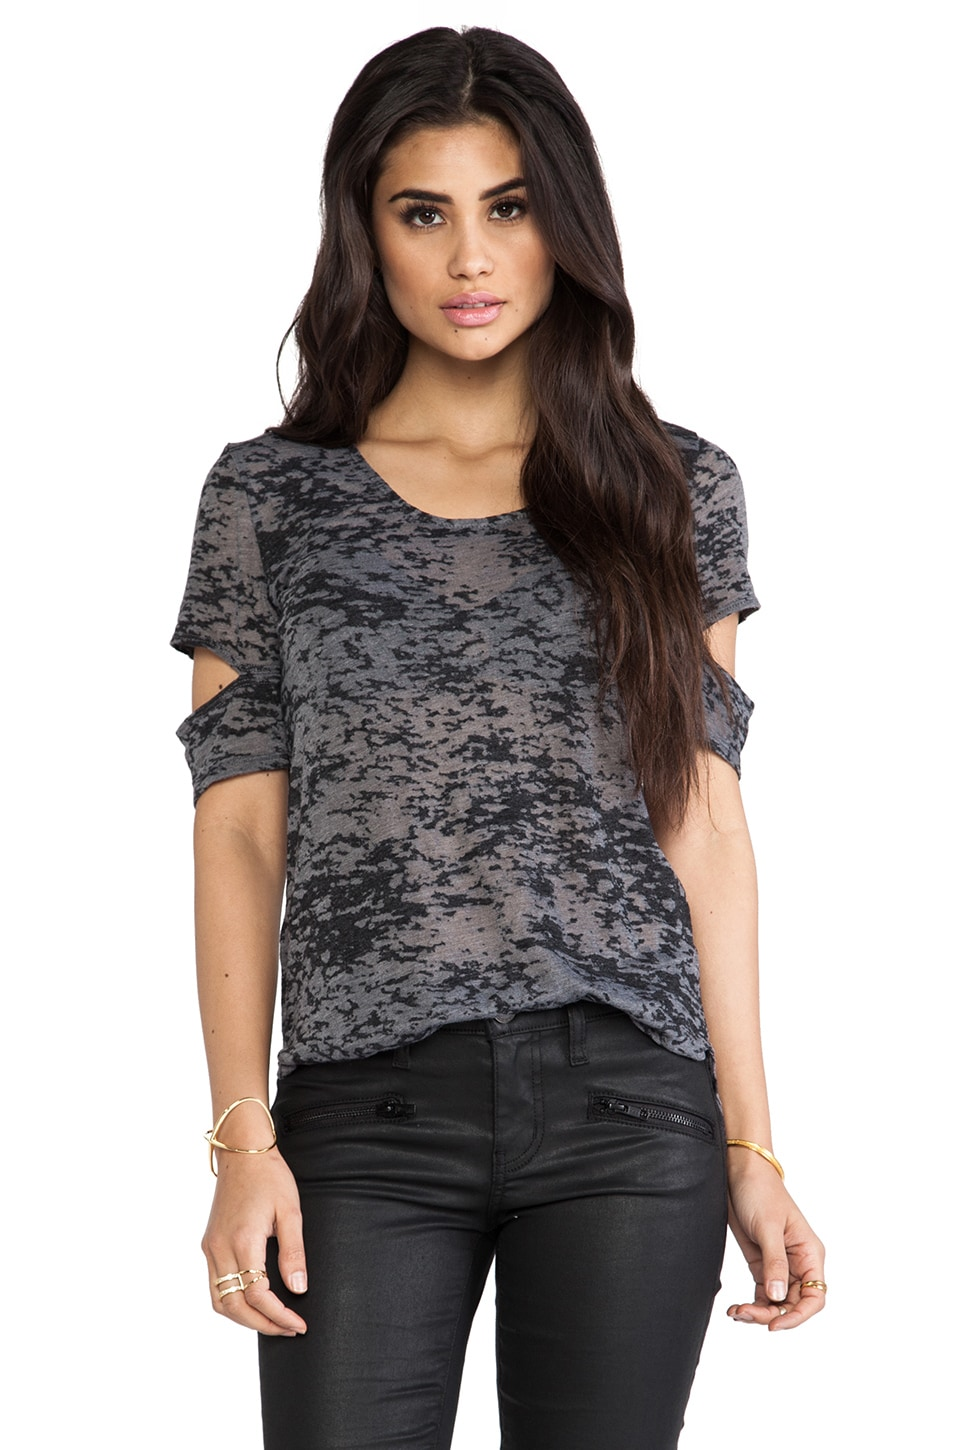 Daftbird Notched Sleeve Scoop Neck Tee in Black